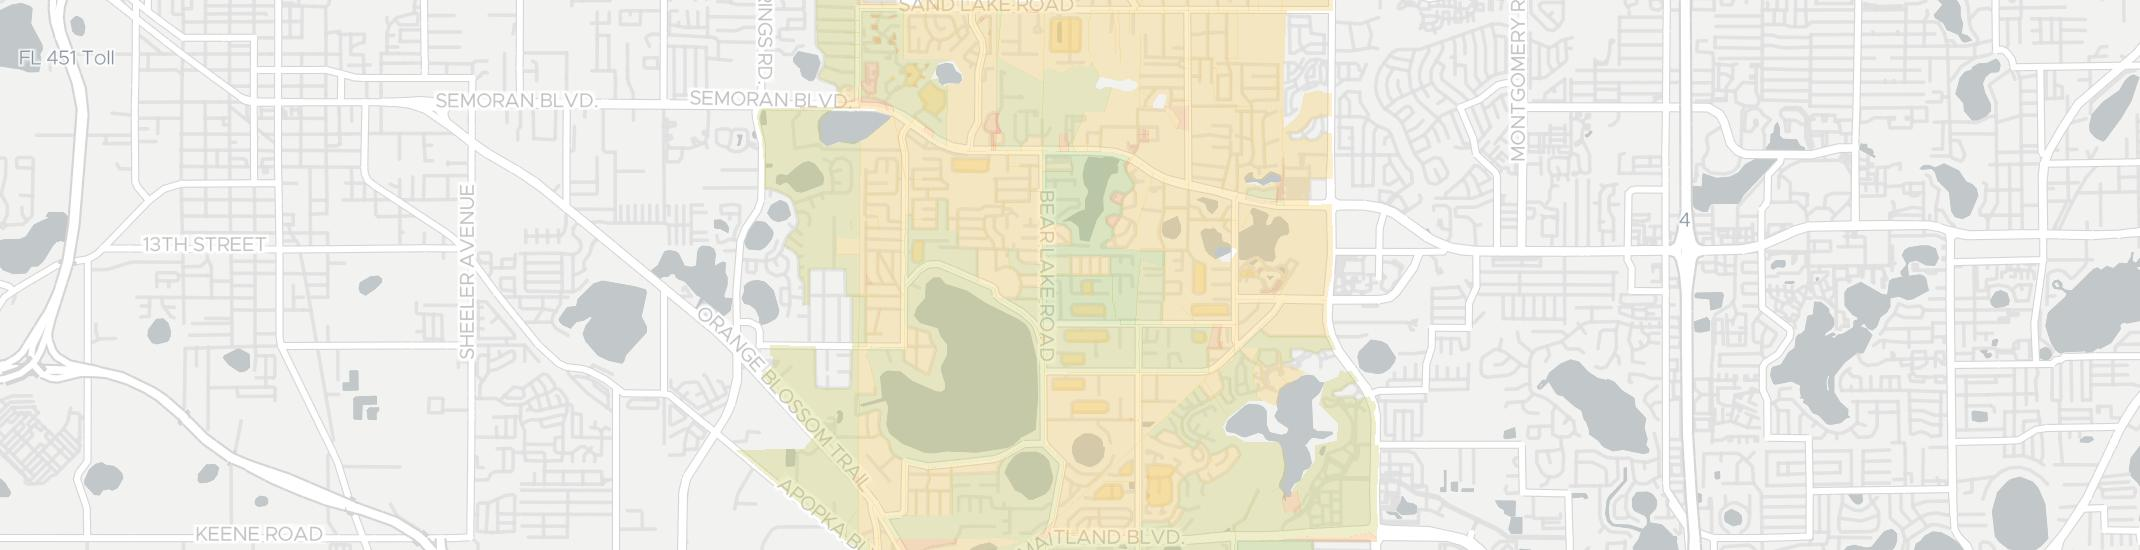 Forest City Internet Competition Map. Click for interactive map.